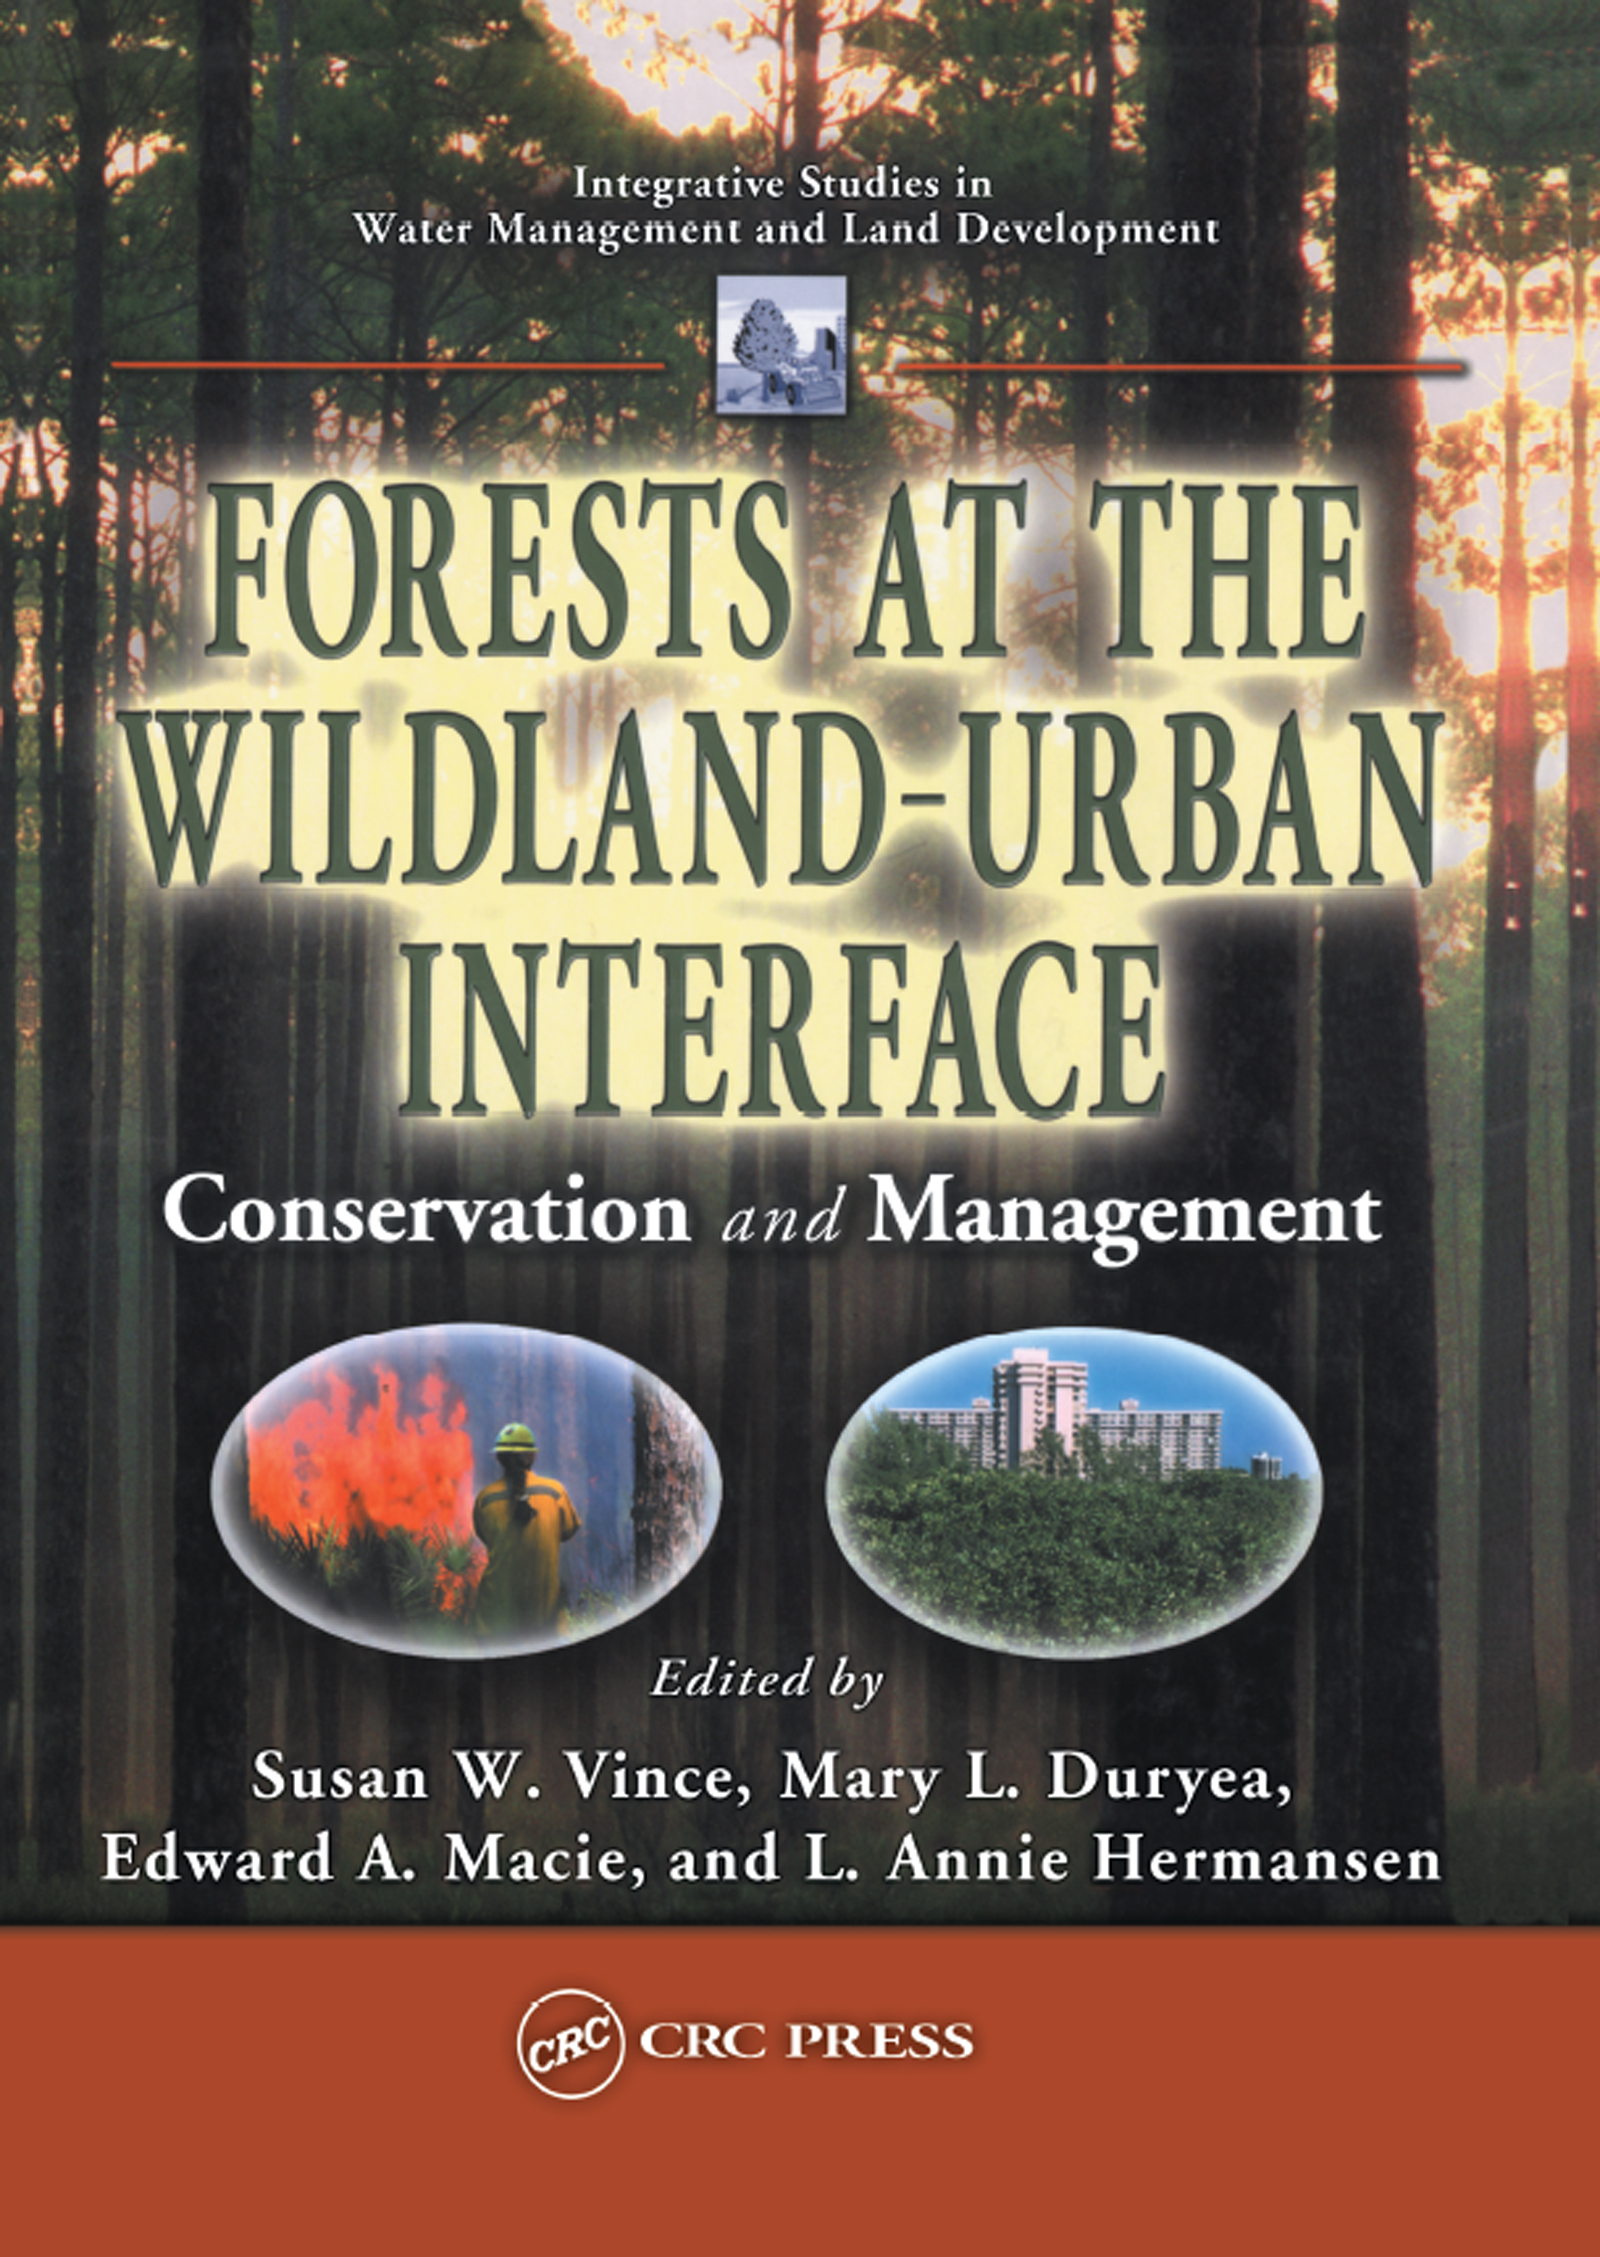 Forests at the Wildland-Urban Interface: Conservation and Management book cover